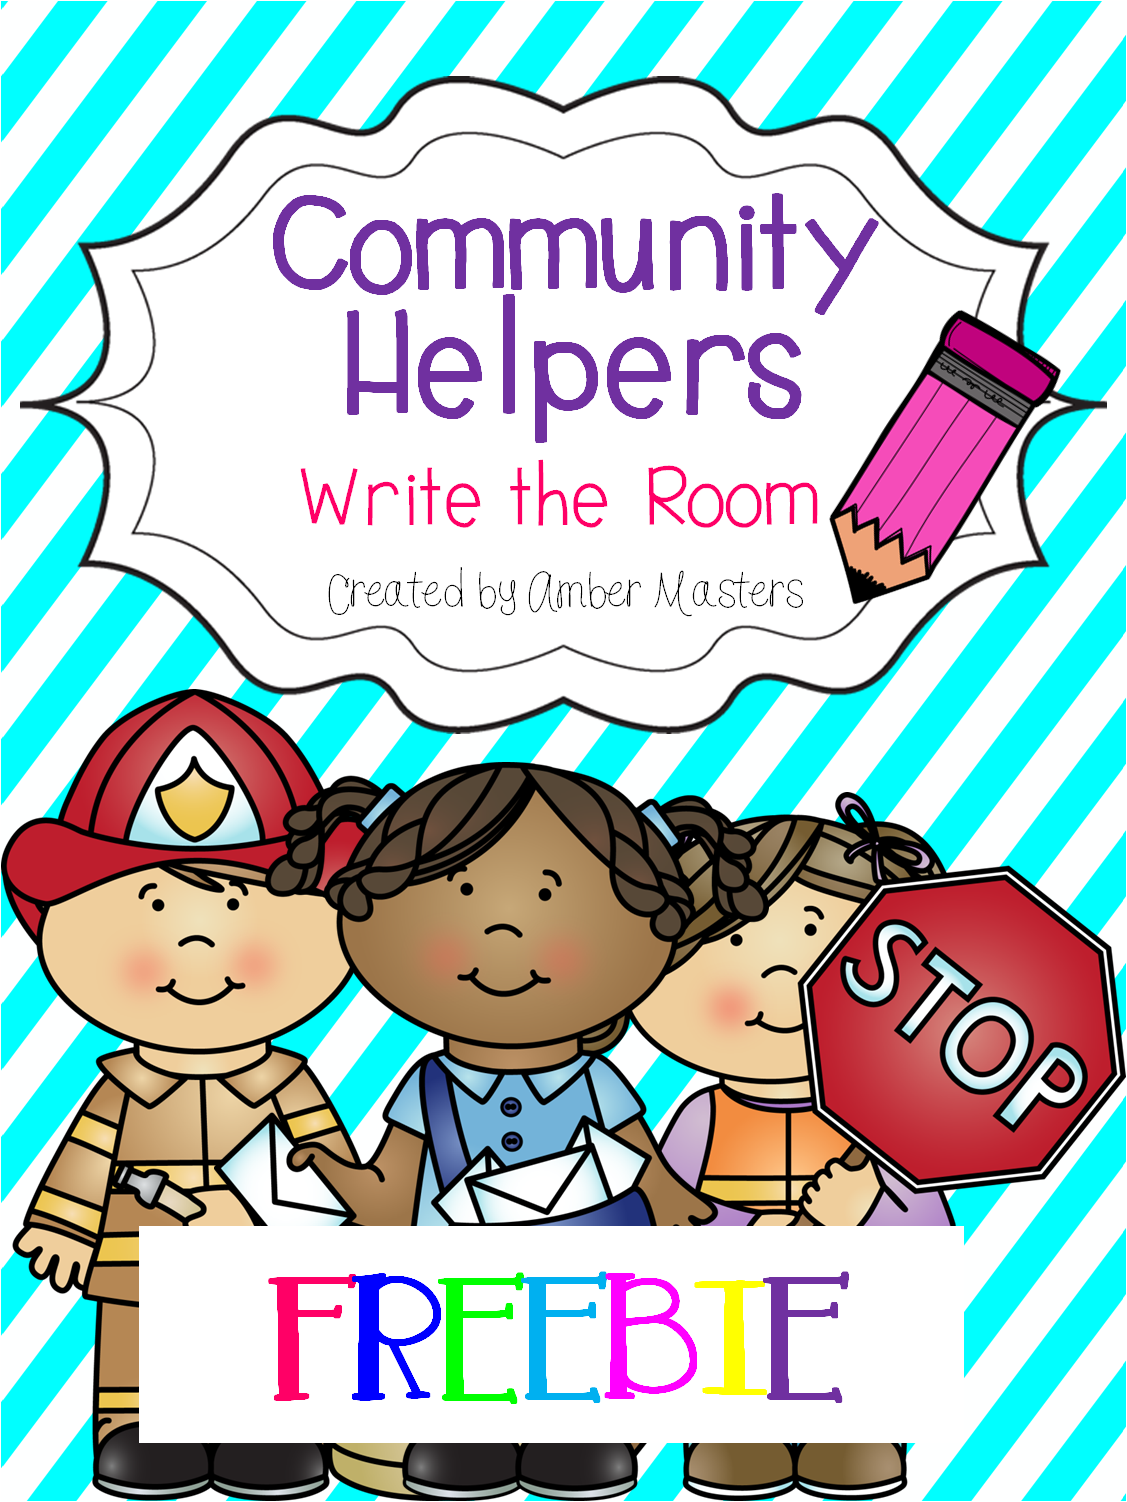 https://www.dropbox.com/s/6whp6iou0r3jqiz/community%20helpers%20freebie%20pdf.pdf?dl=0